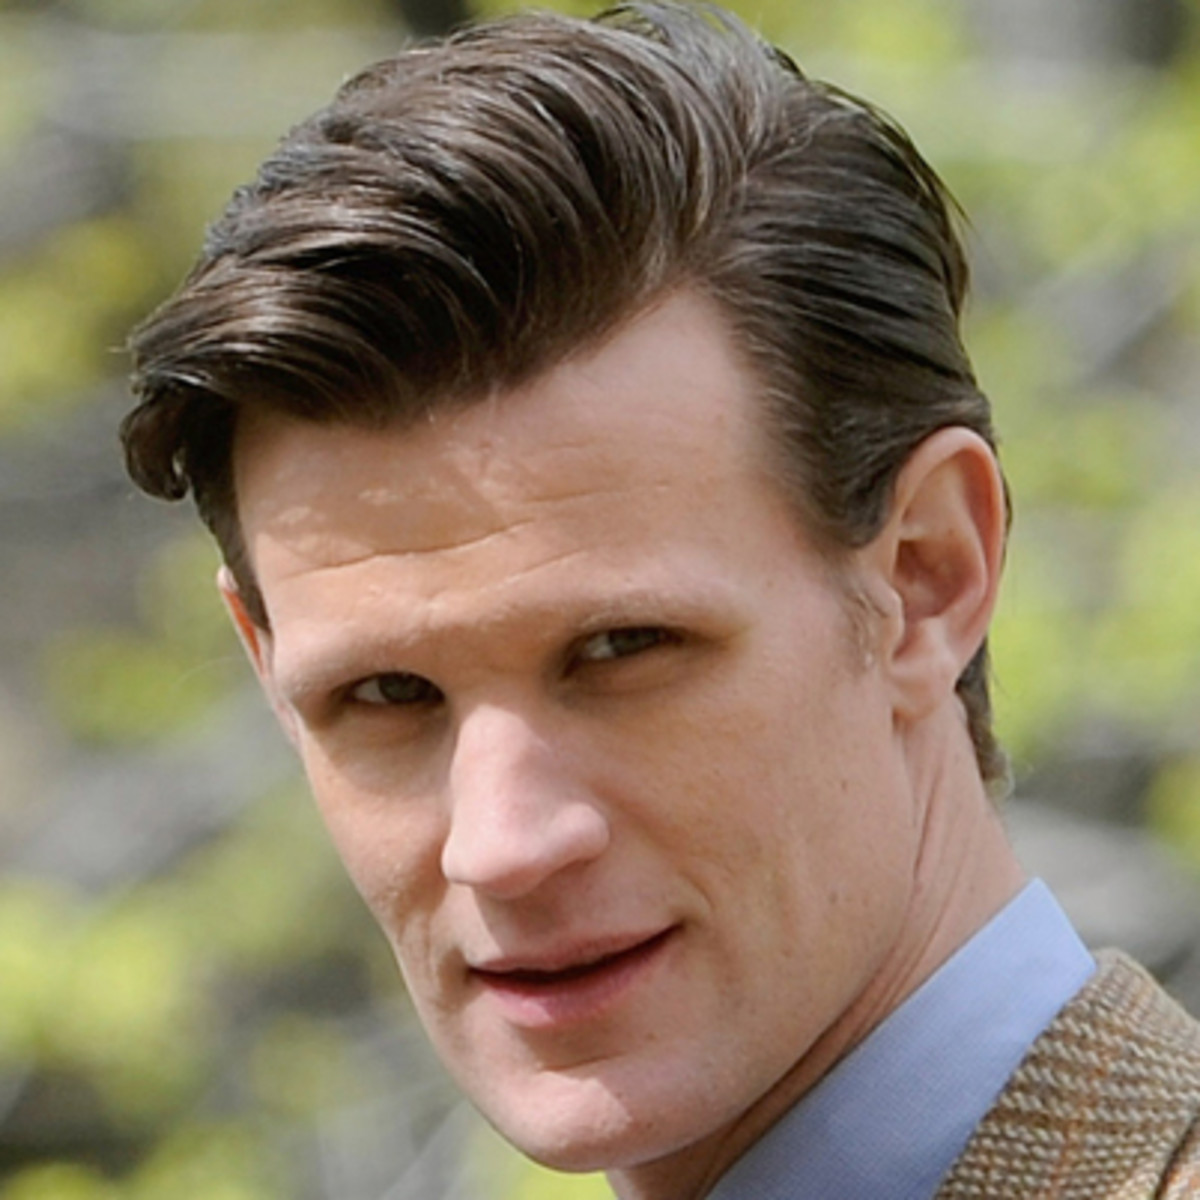 Matt Smith Wiki: Everything To Know About Karen Gillan's Boyfriend